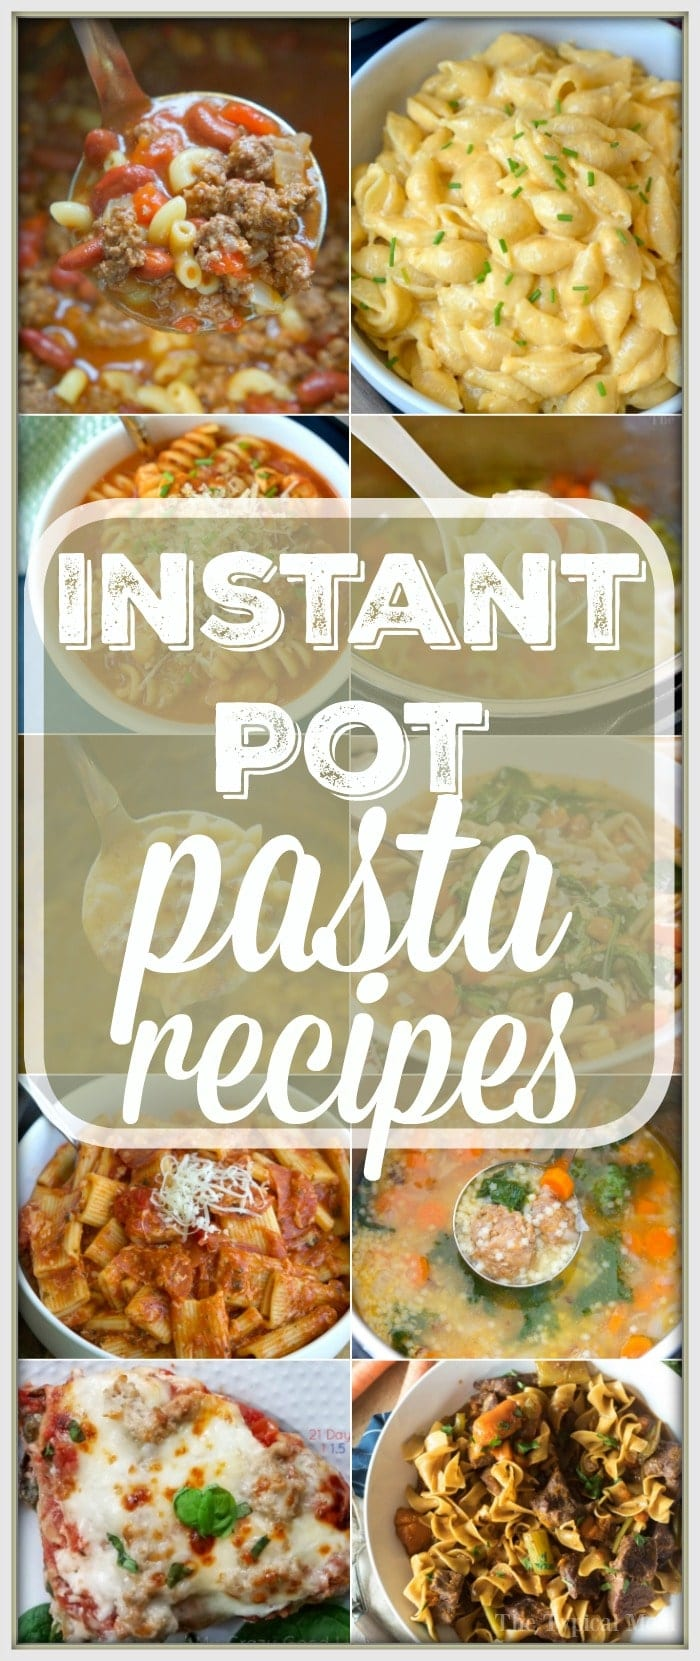 Here are 17 easy Instant Pot pasta recipes to get you started with your pressure cooker! Simple soups and main dishes with pasta in them that we love. #instantpot #pasta #recipes